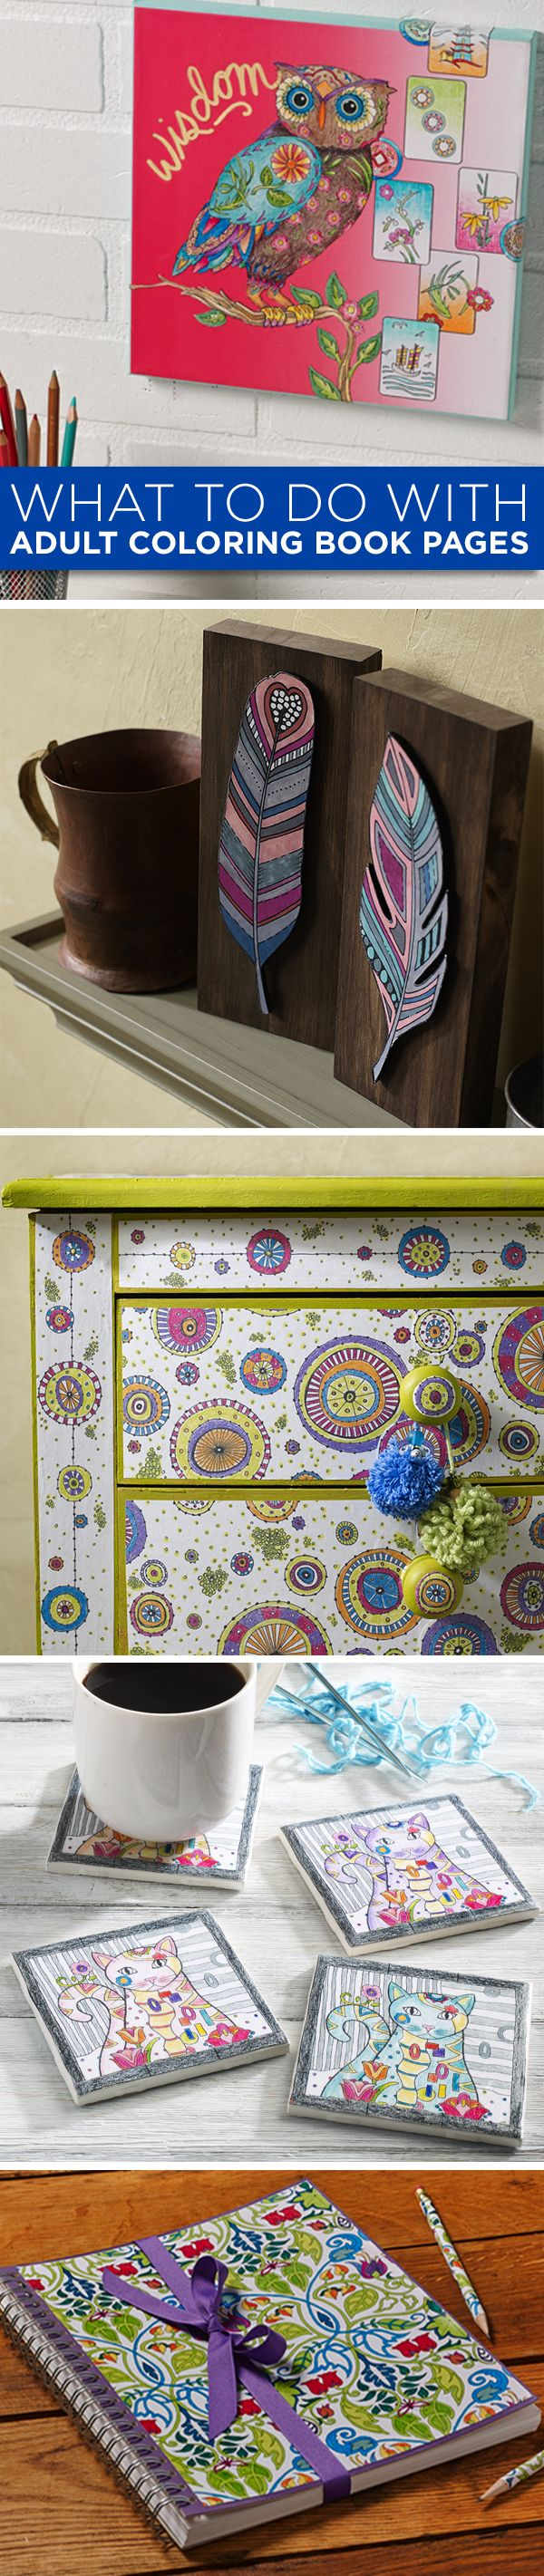 So Many Fun Craft Projects Can Be Made From The Designs Of Completed Adult Coloring Book Pages Home Decor To Furniture Wall And More